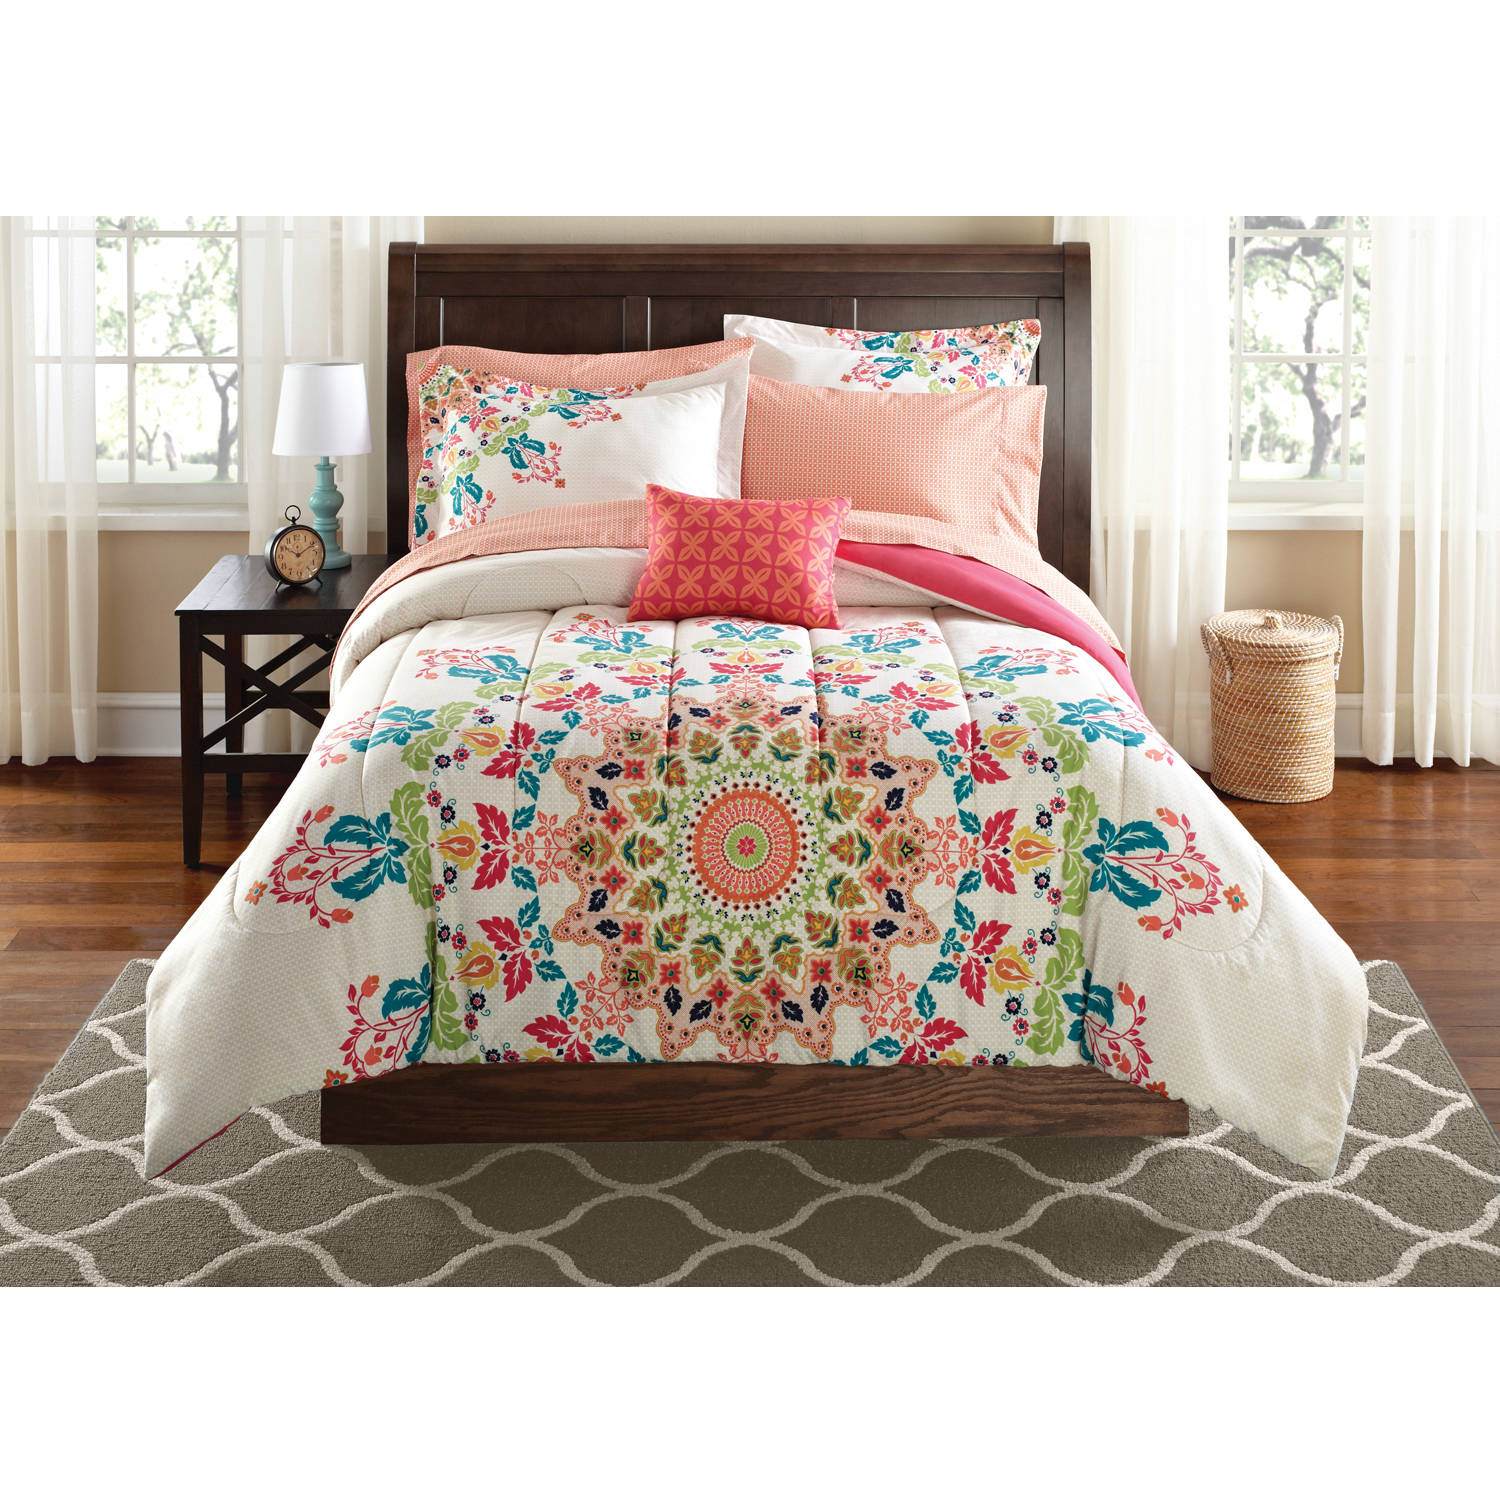 Bedding sets for women - Mainstays Medallion Bed In A Bag Bedding Set